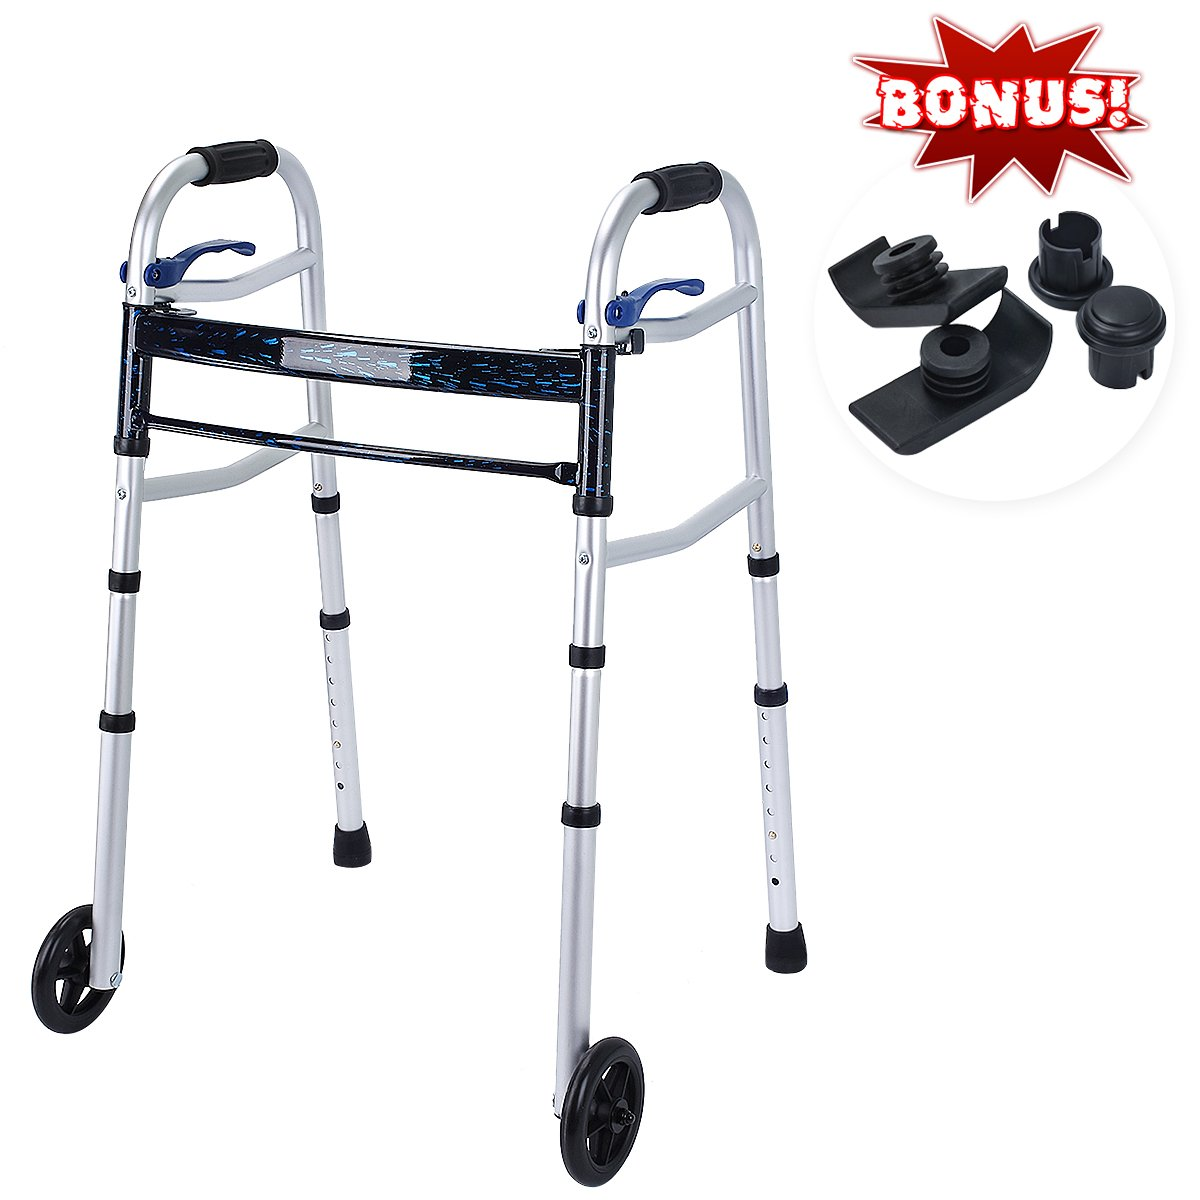 Healthline Compact Trigger Release 350 lbs Folding Walker with 5'' Wheels and Fold-up Legs, Lightweight & Portable - w/Bonus 2 Pairs of Glides